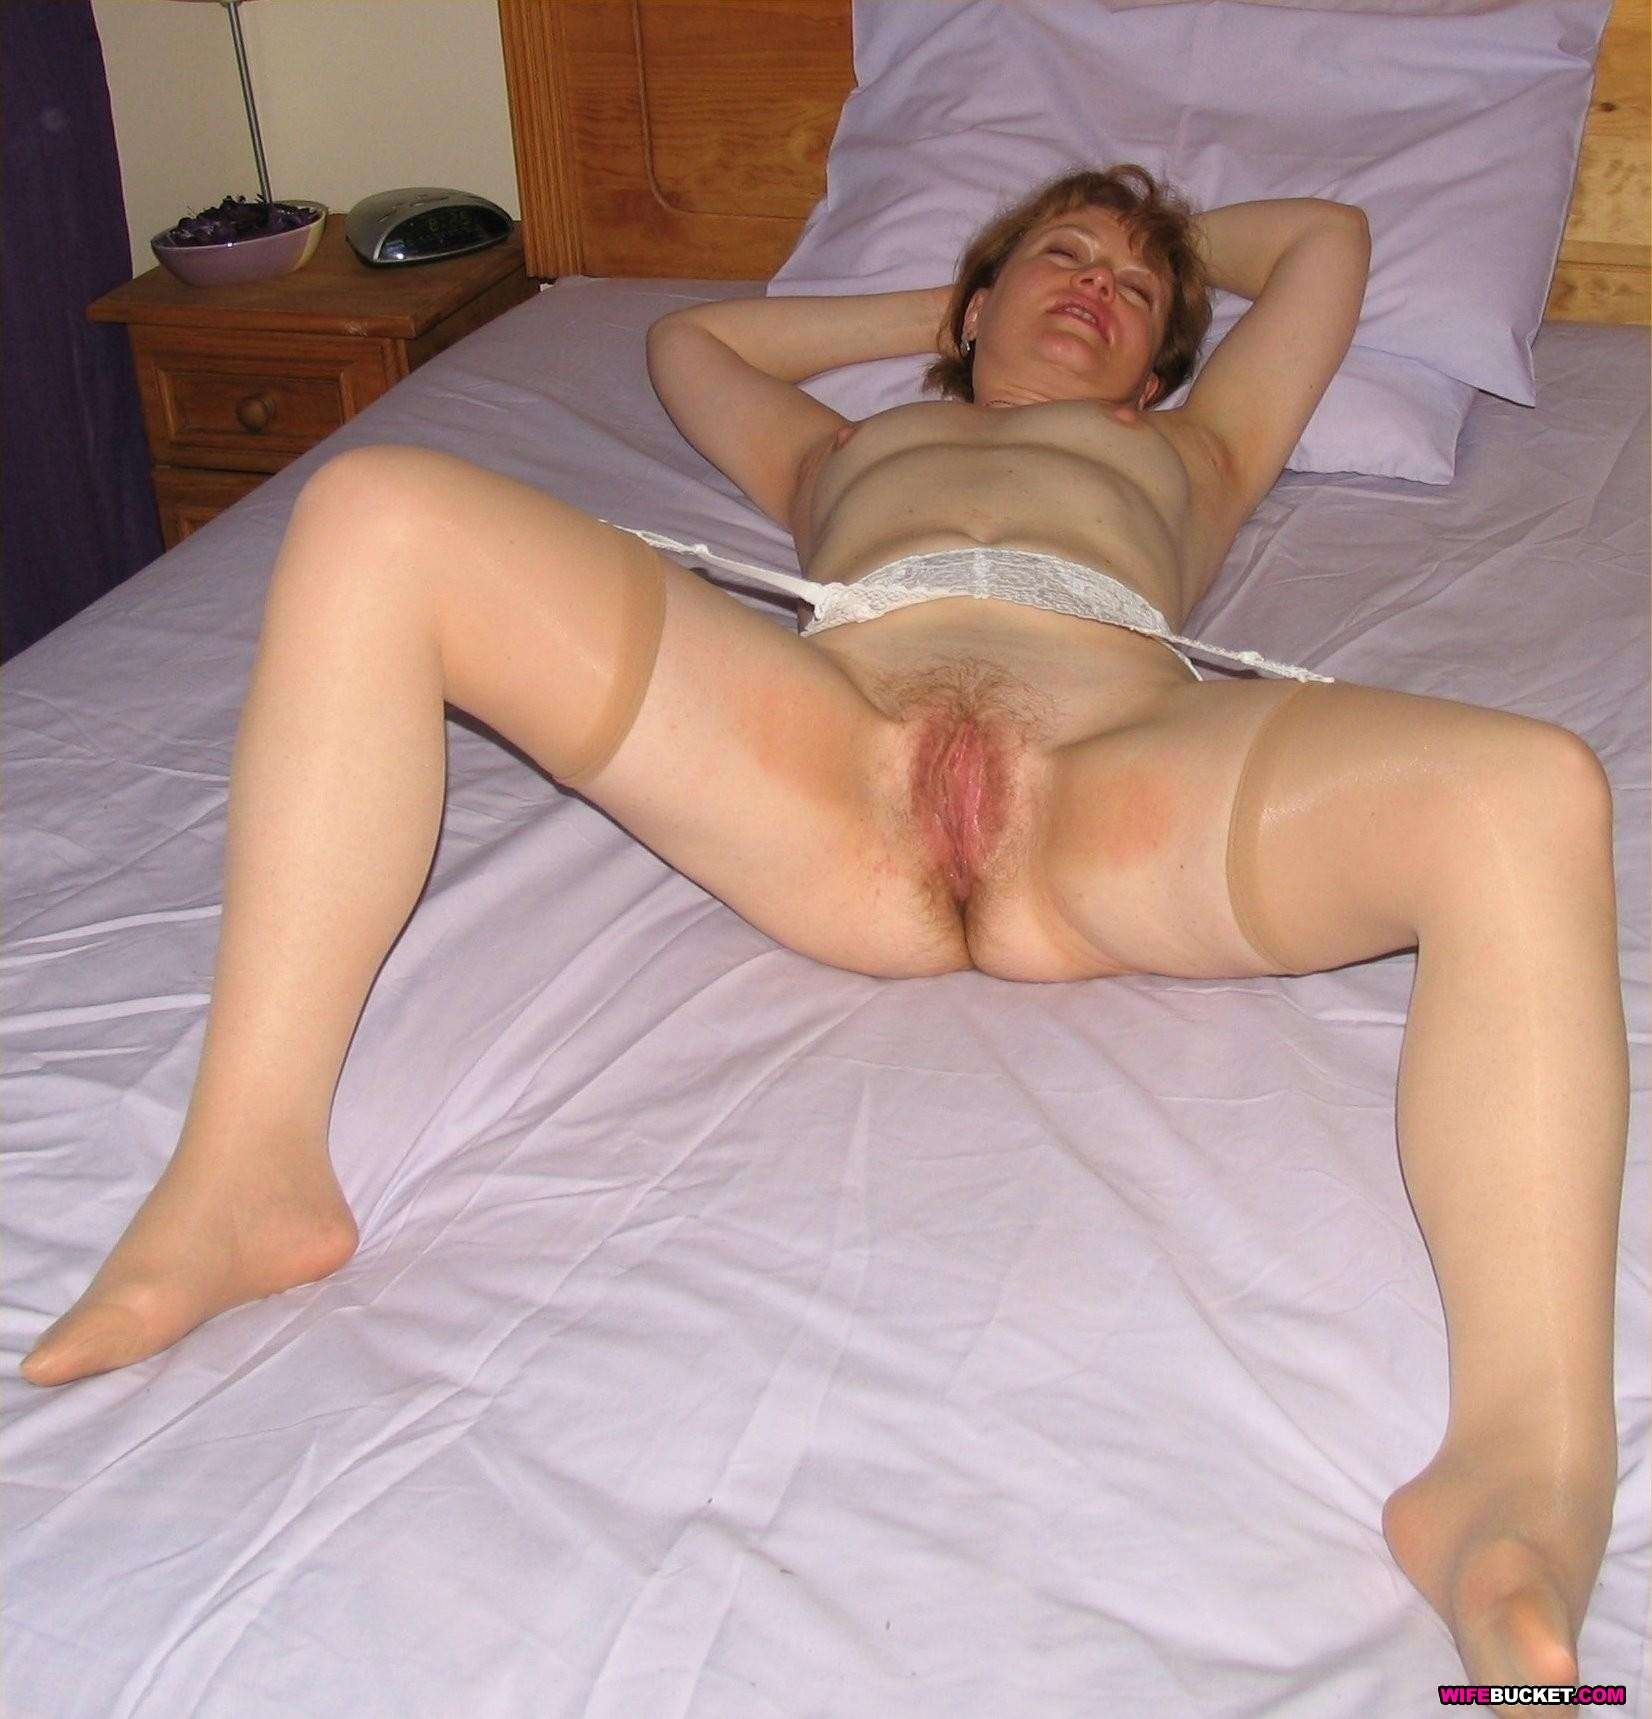 Mature cuckold hotwife #1